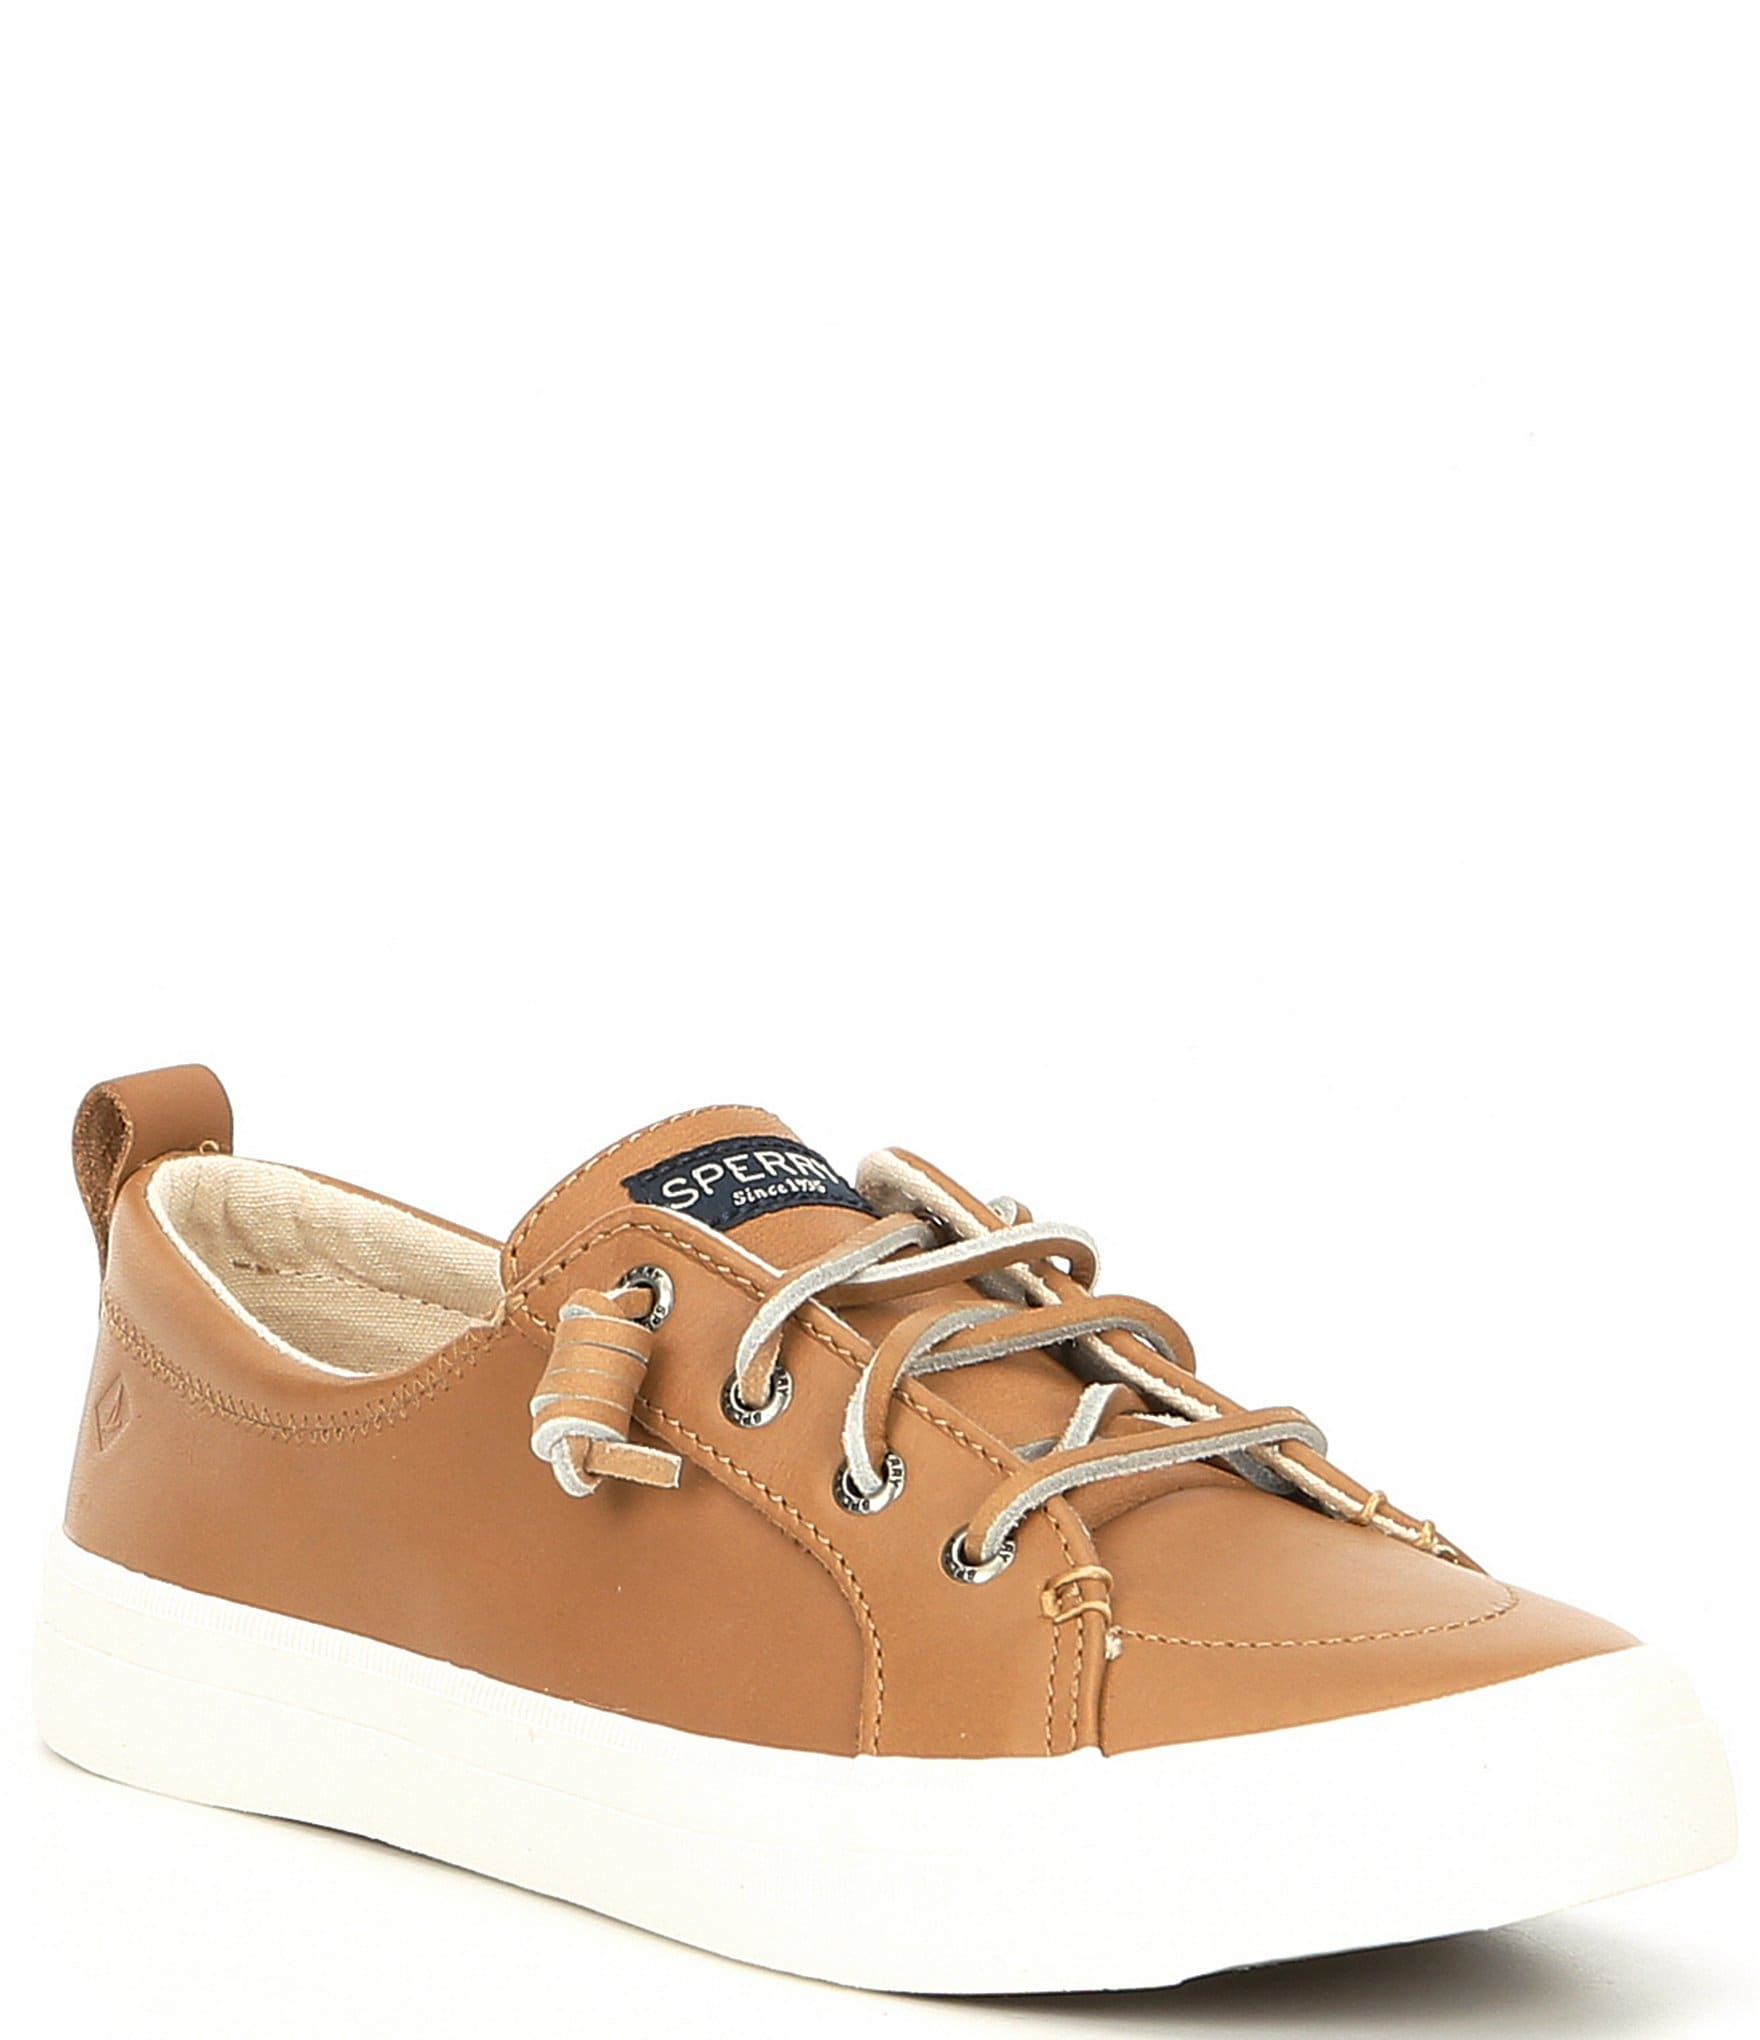 e1bffdc476a Sperry Women's Crest Vibe Leather Sneakers